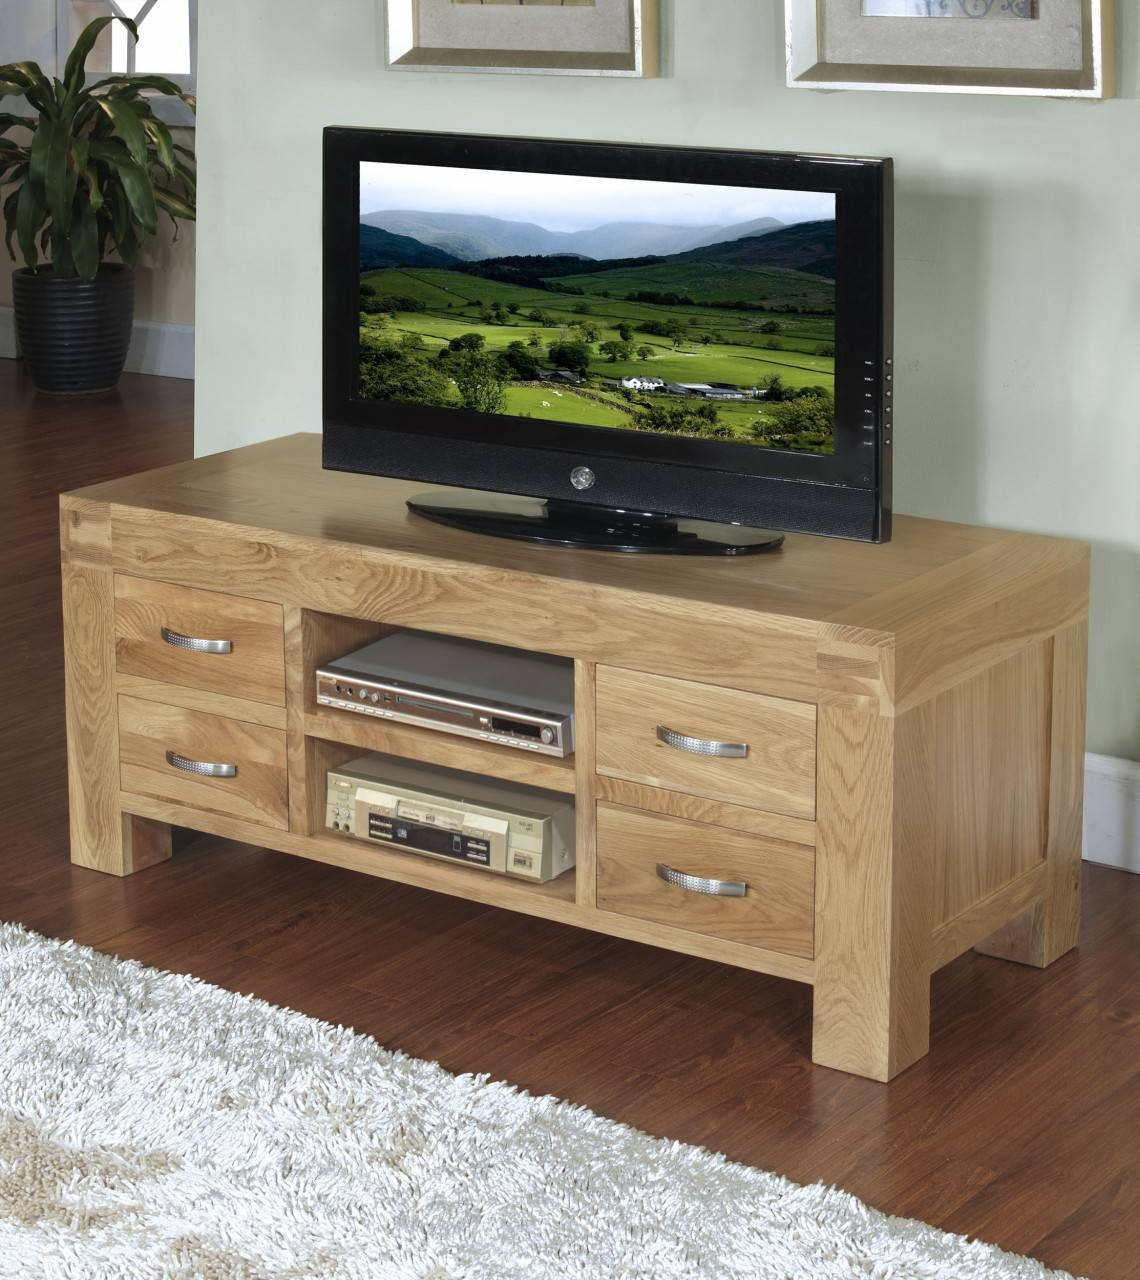 Rivermead Solid Oak Modern Furniture Widescreen Tv Cabinet Stand intended for Oak Tv Stands For Flat Screens (Image 6 of 15)